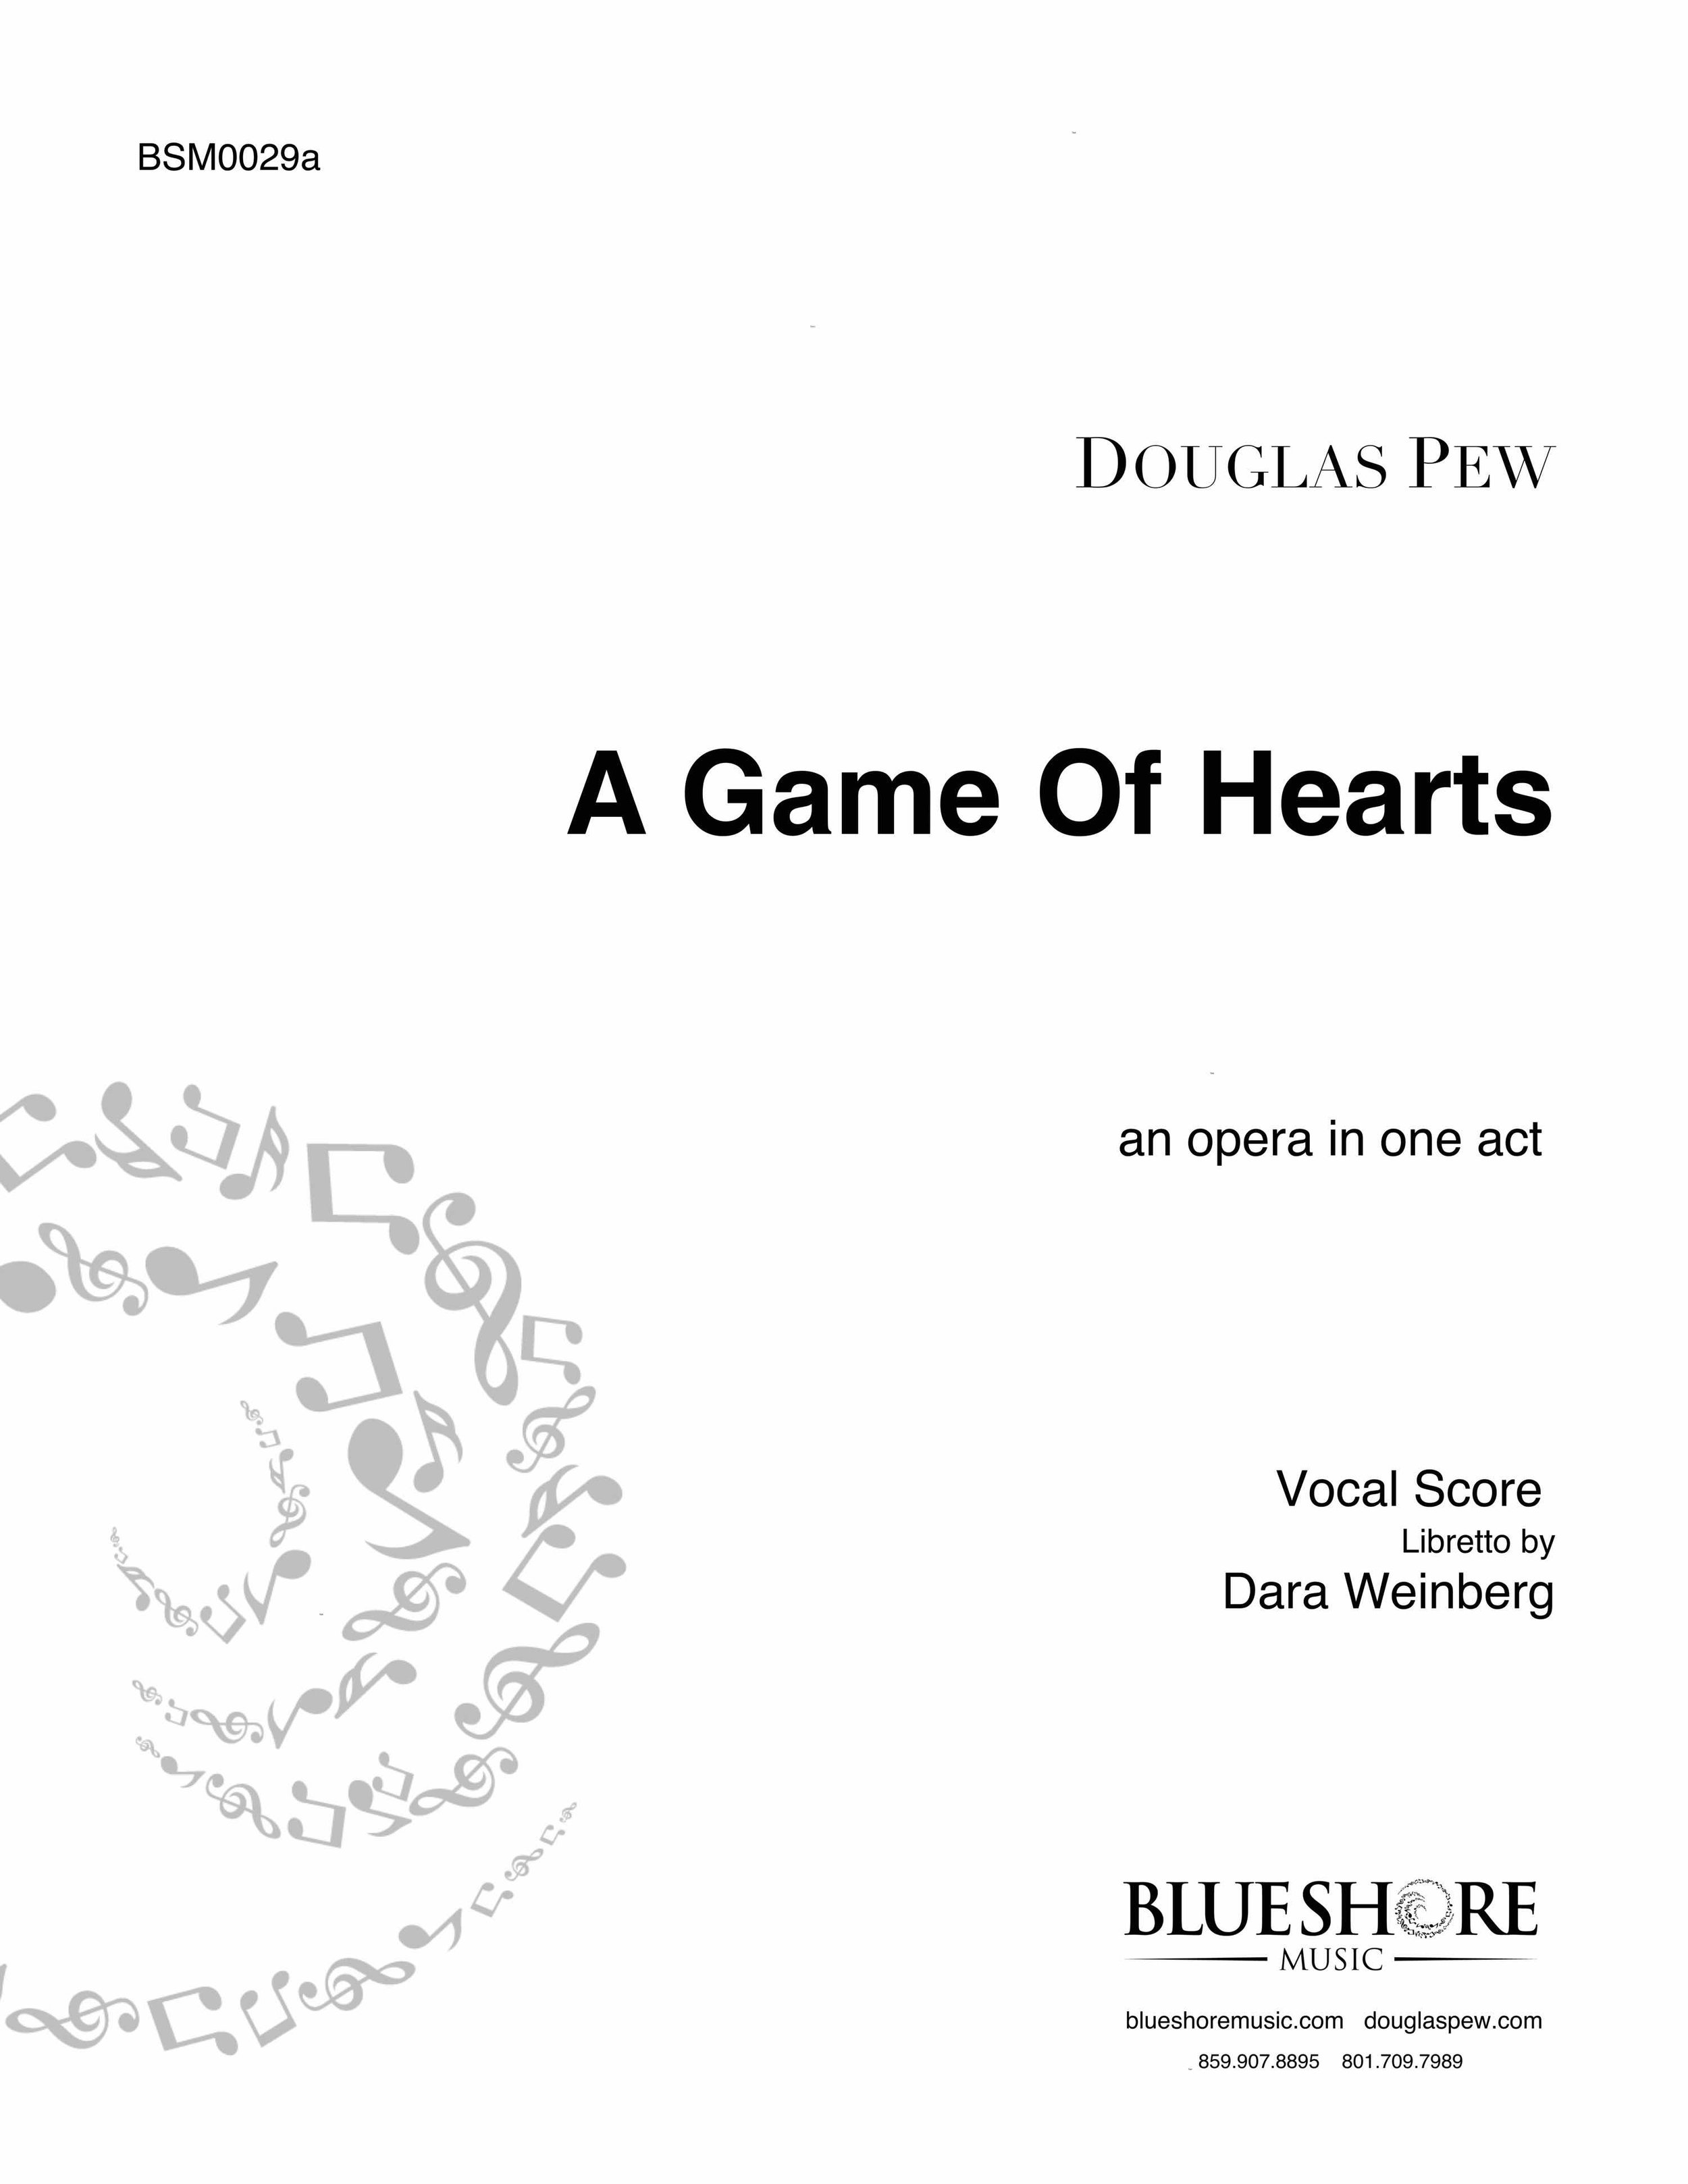 A Game of Hearts , an opera in one act